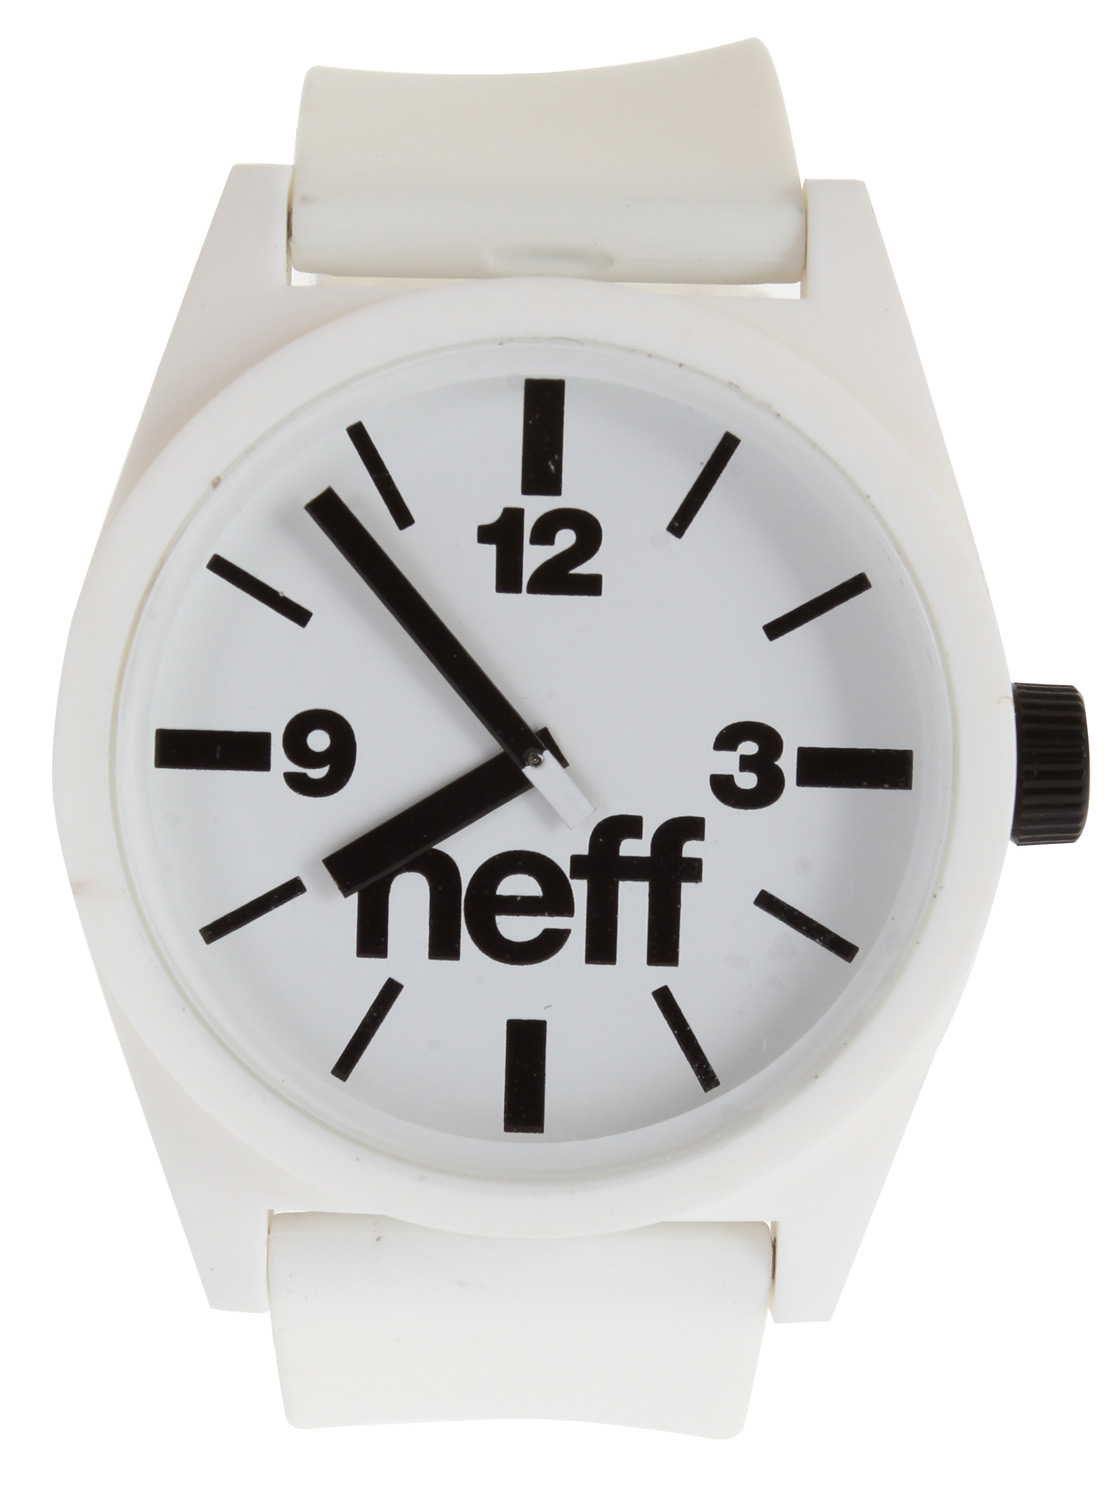 Skateboard The Neff Daily Watch has a clean and simple style you will never tire of. A large face with bold numbers is easy to read under the influence. The polyurethane band keeps things lightweight and the stainless steel back stands up against harsh impacts.Key Features of the Neff Daily Watch: XL display Smooth polyurethane strap 4cm diameter case Case made from protective ABS material Polyurethane adjustable strap One size fits all ABS stainless steel reinforced back 5 ATM water resistant - $30.00